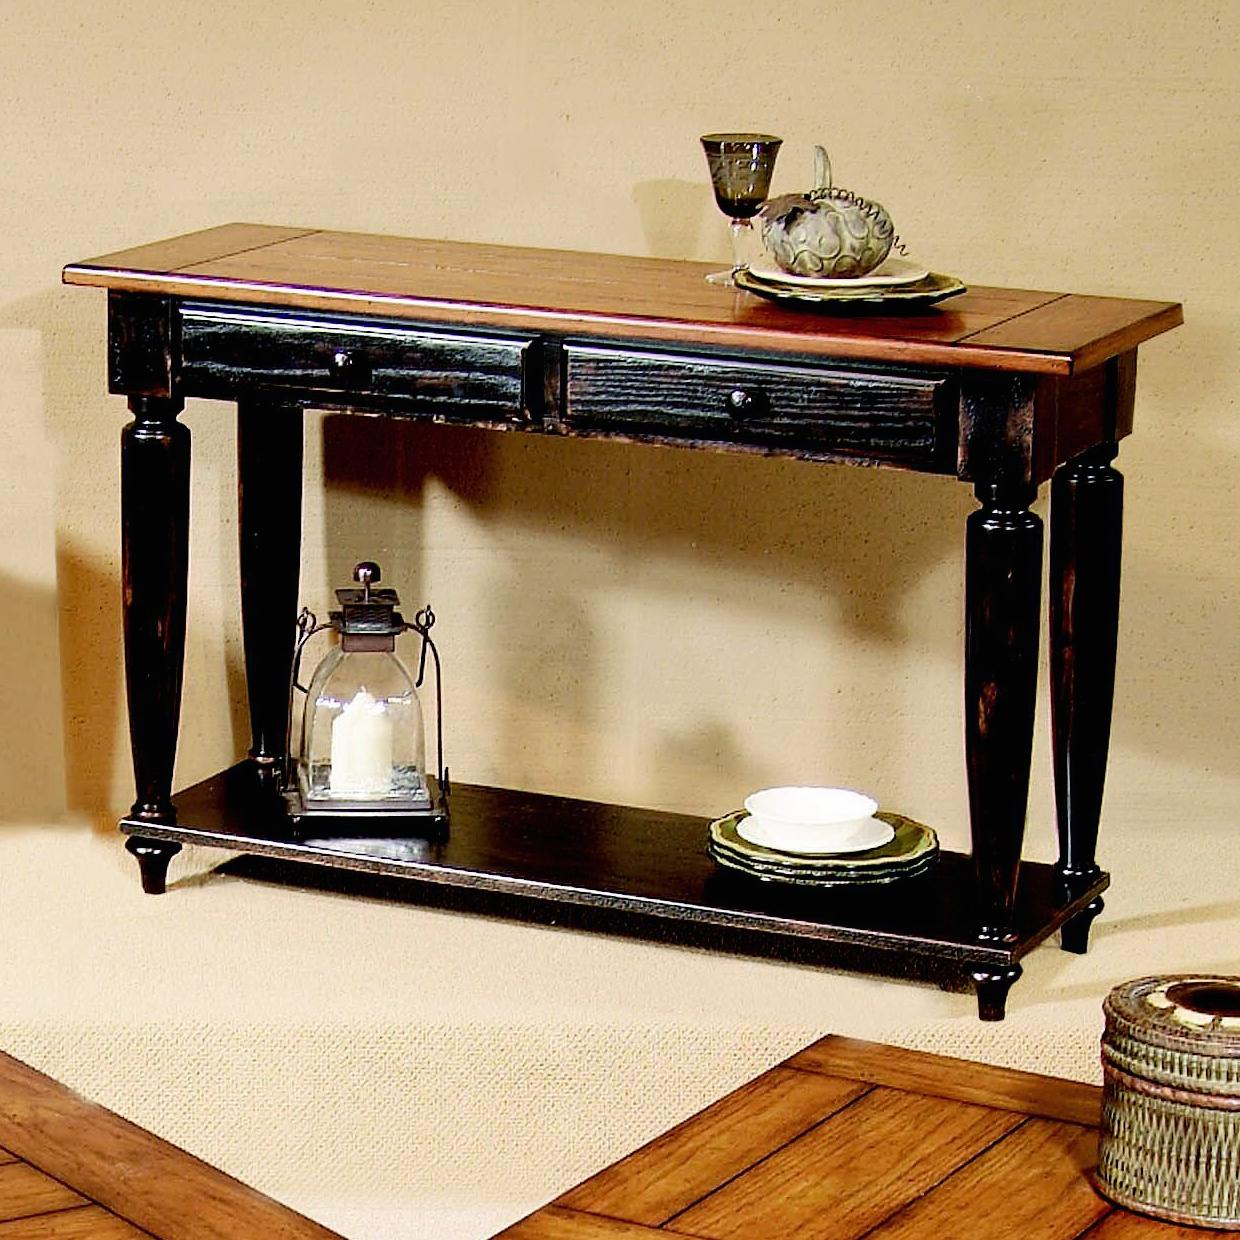 Progressive Furniture Country Vista Sofa Table - Item Number: 44542-05